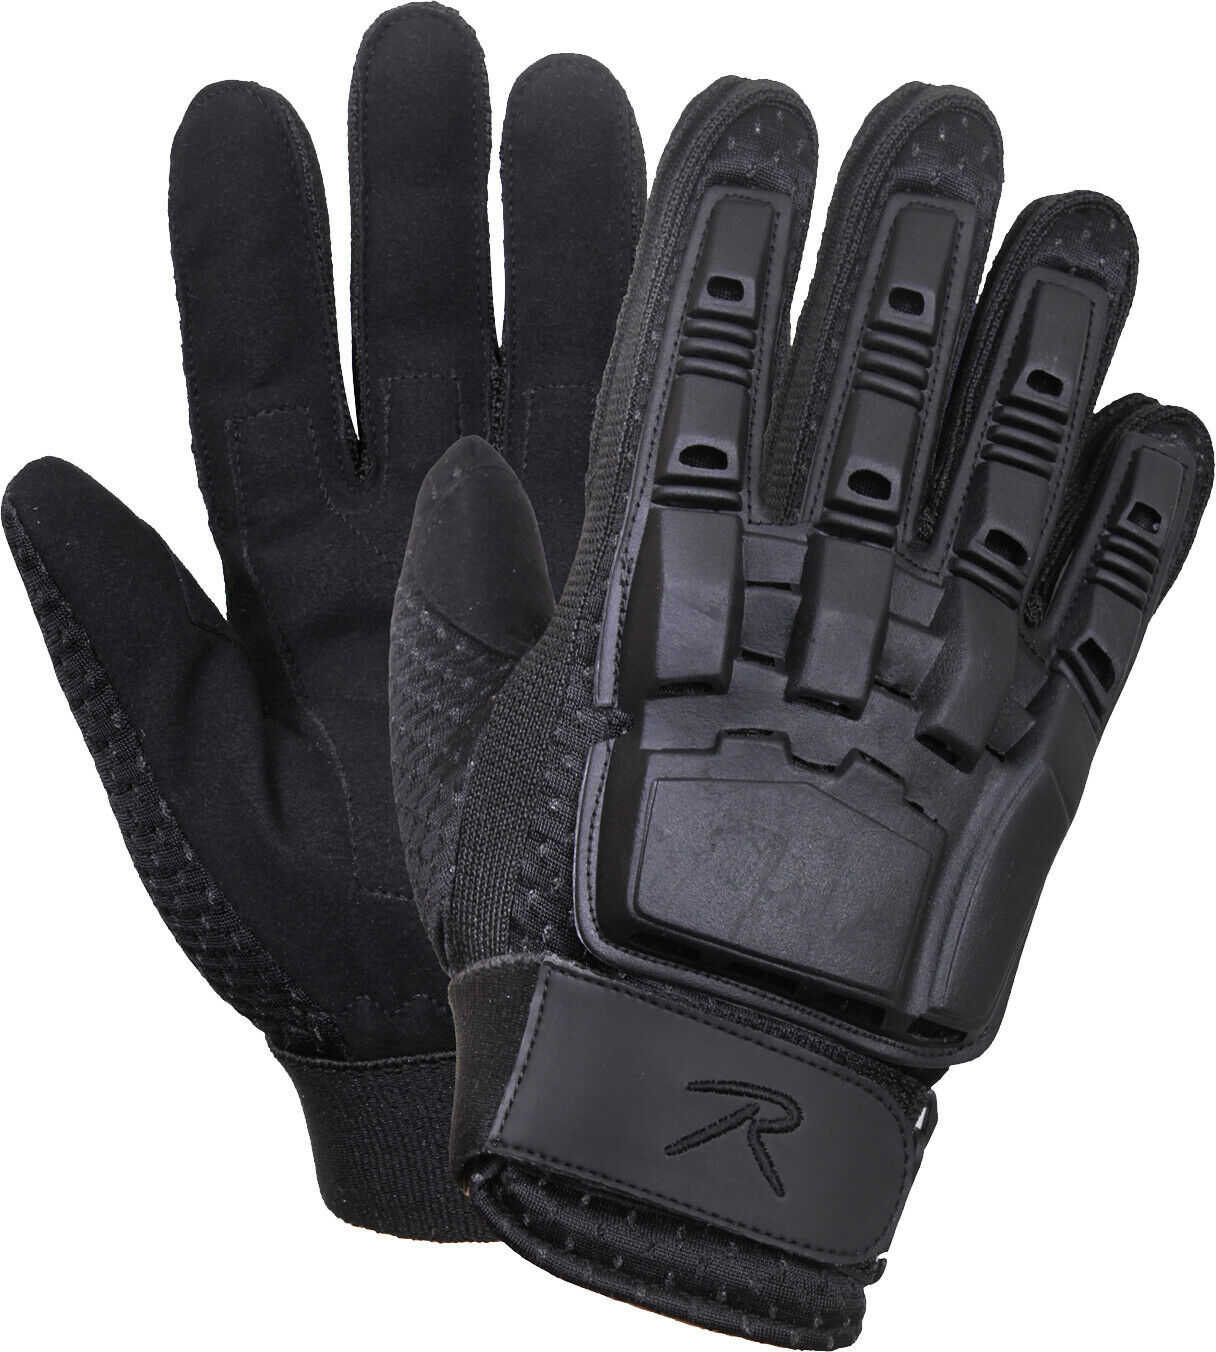 Black Armored Military Padded Molded Hard Back Tactical Gloves